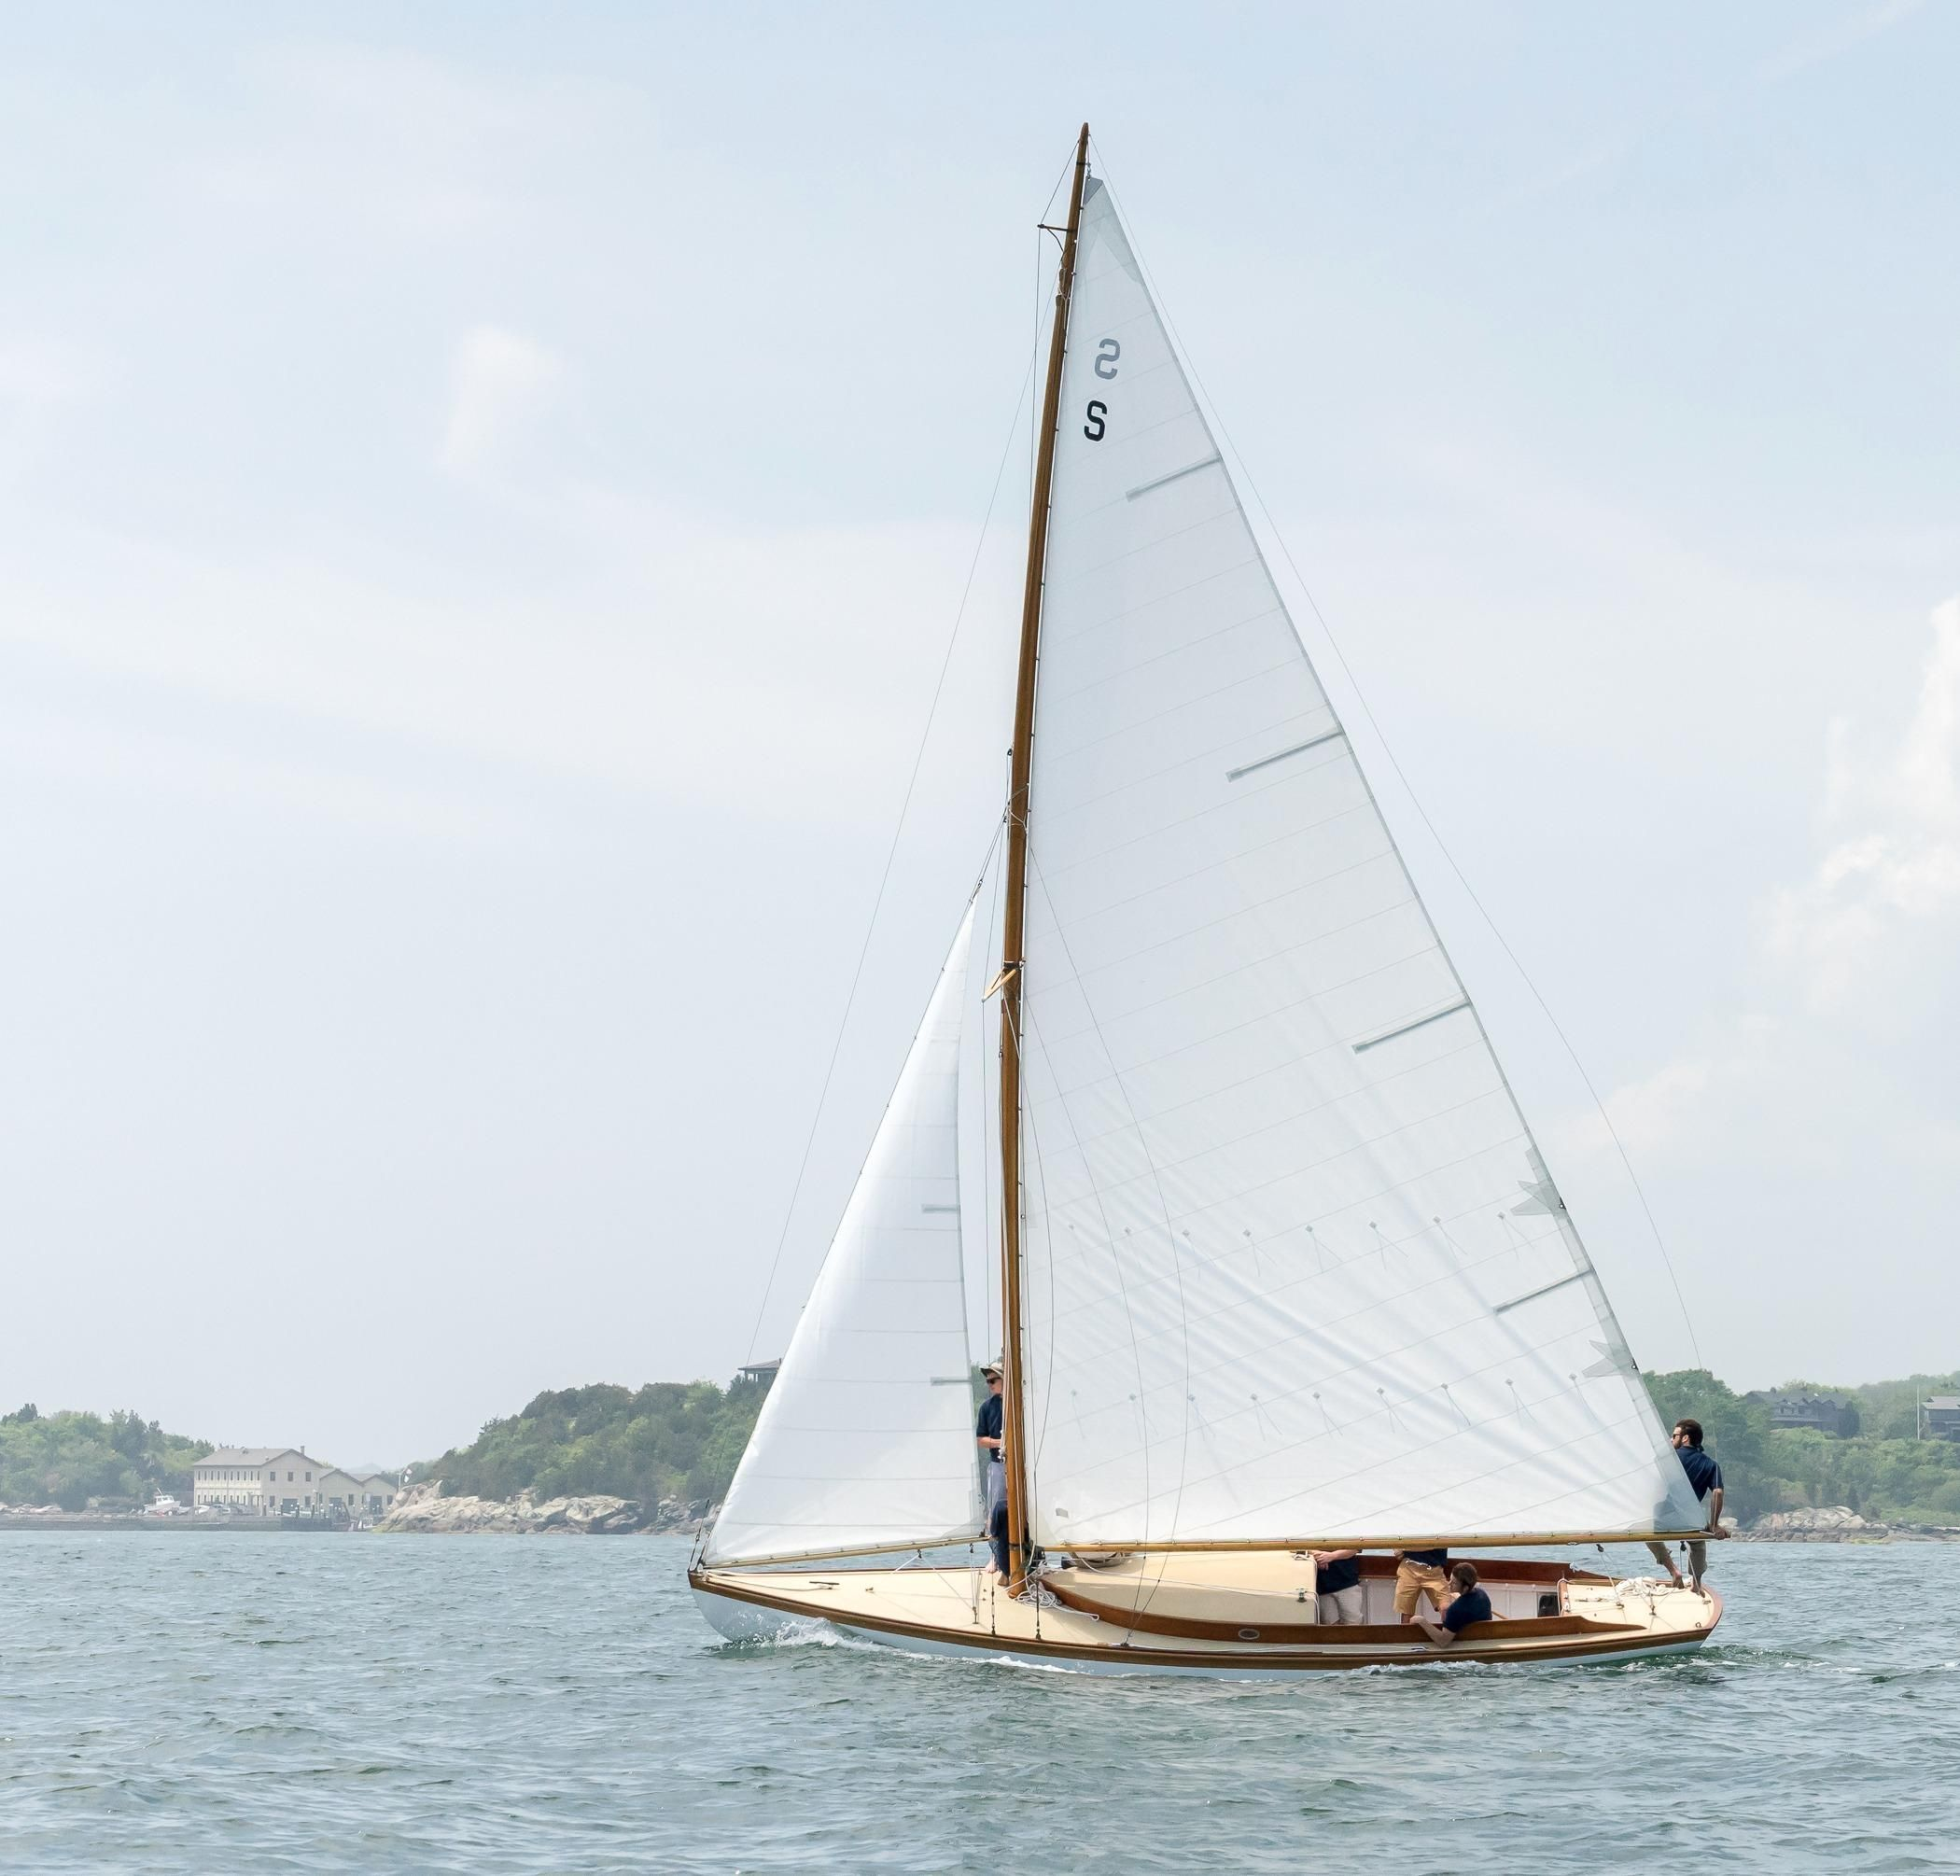 1925 Herreshoff S-Class Sail Boat For Sale - www.yachtworld.com